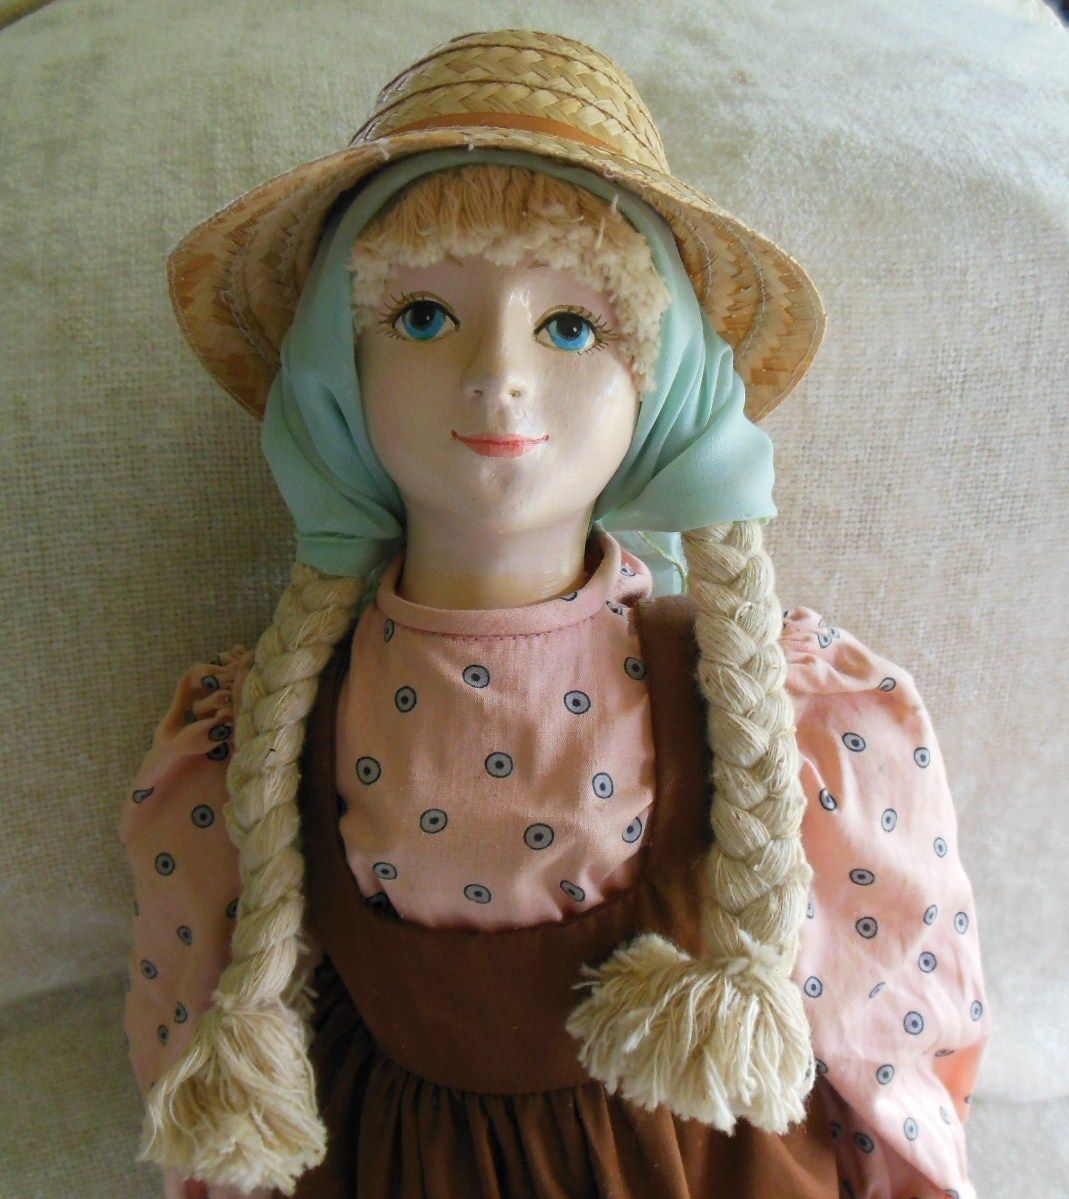 Primary image for Abigail Porcelain/Cloth Doll by Artist Mary Lake-Thompson for Doll Crafters Clas